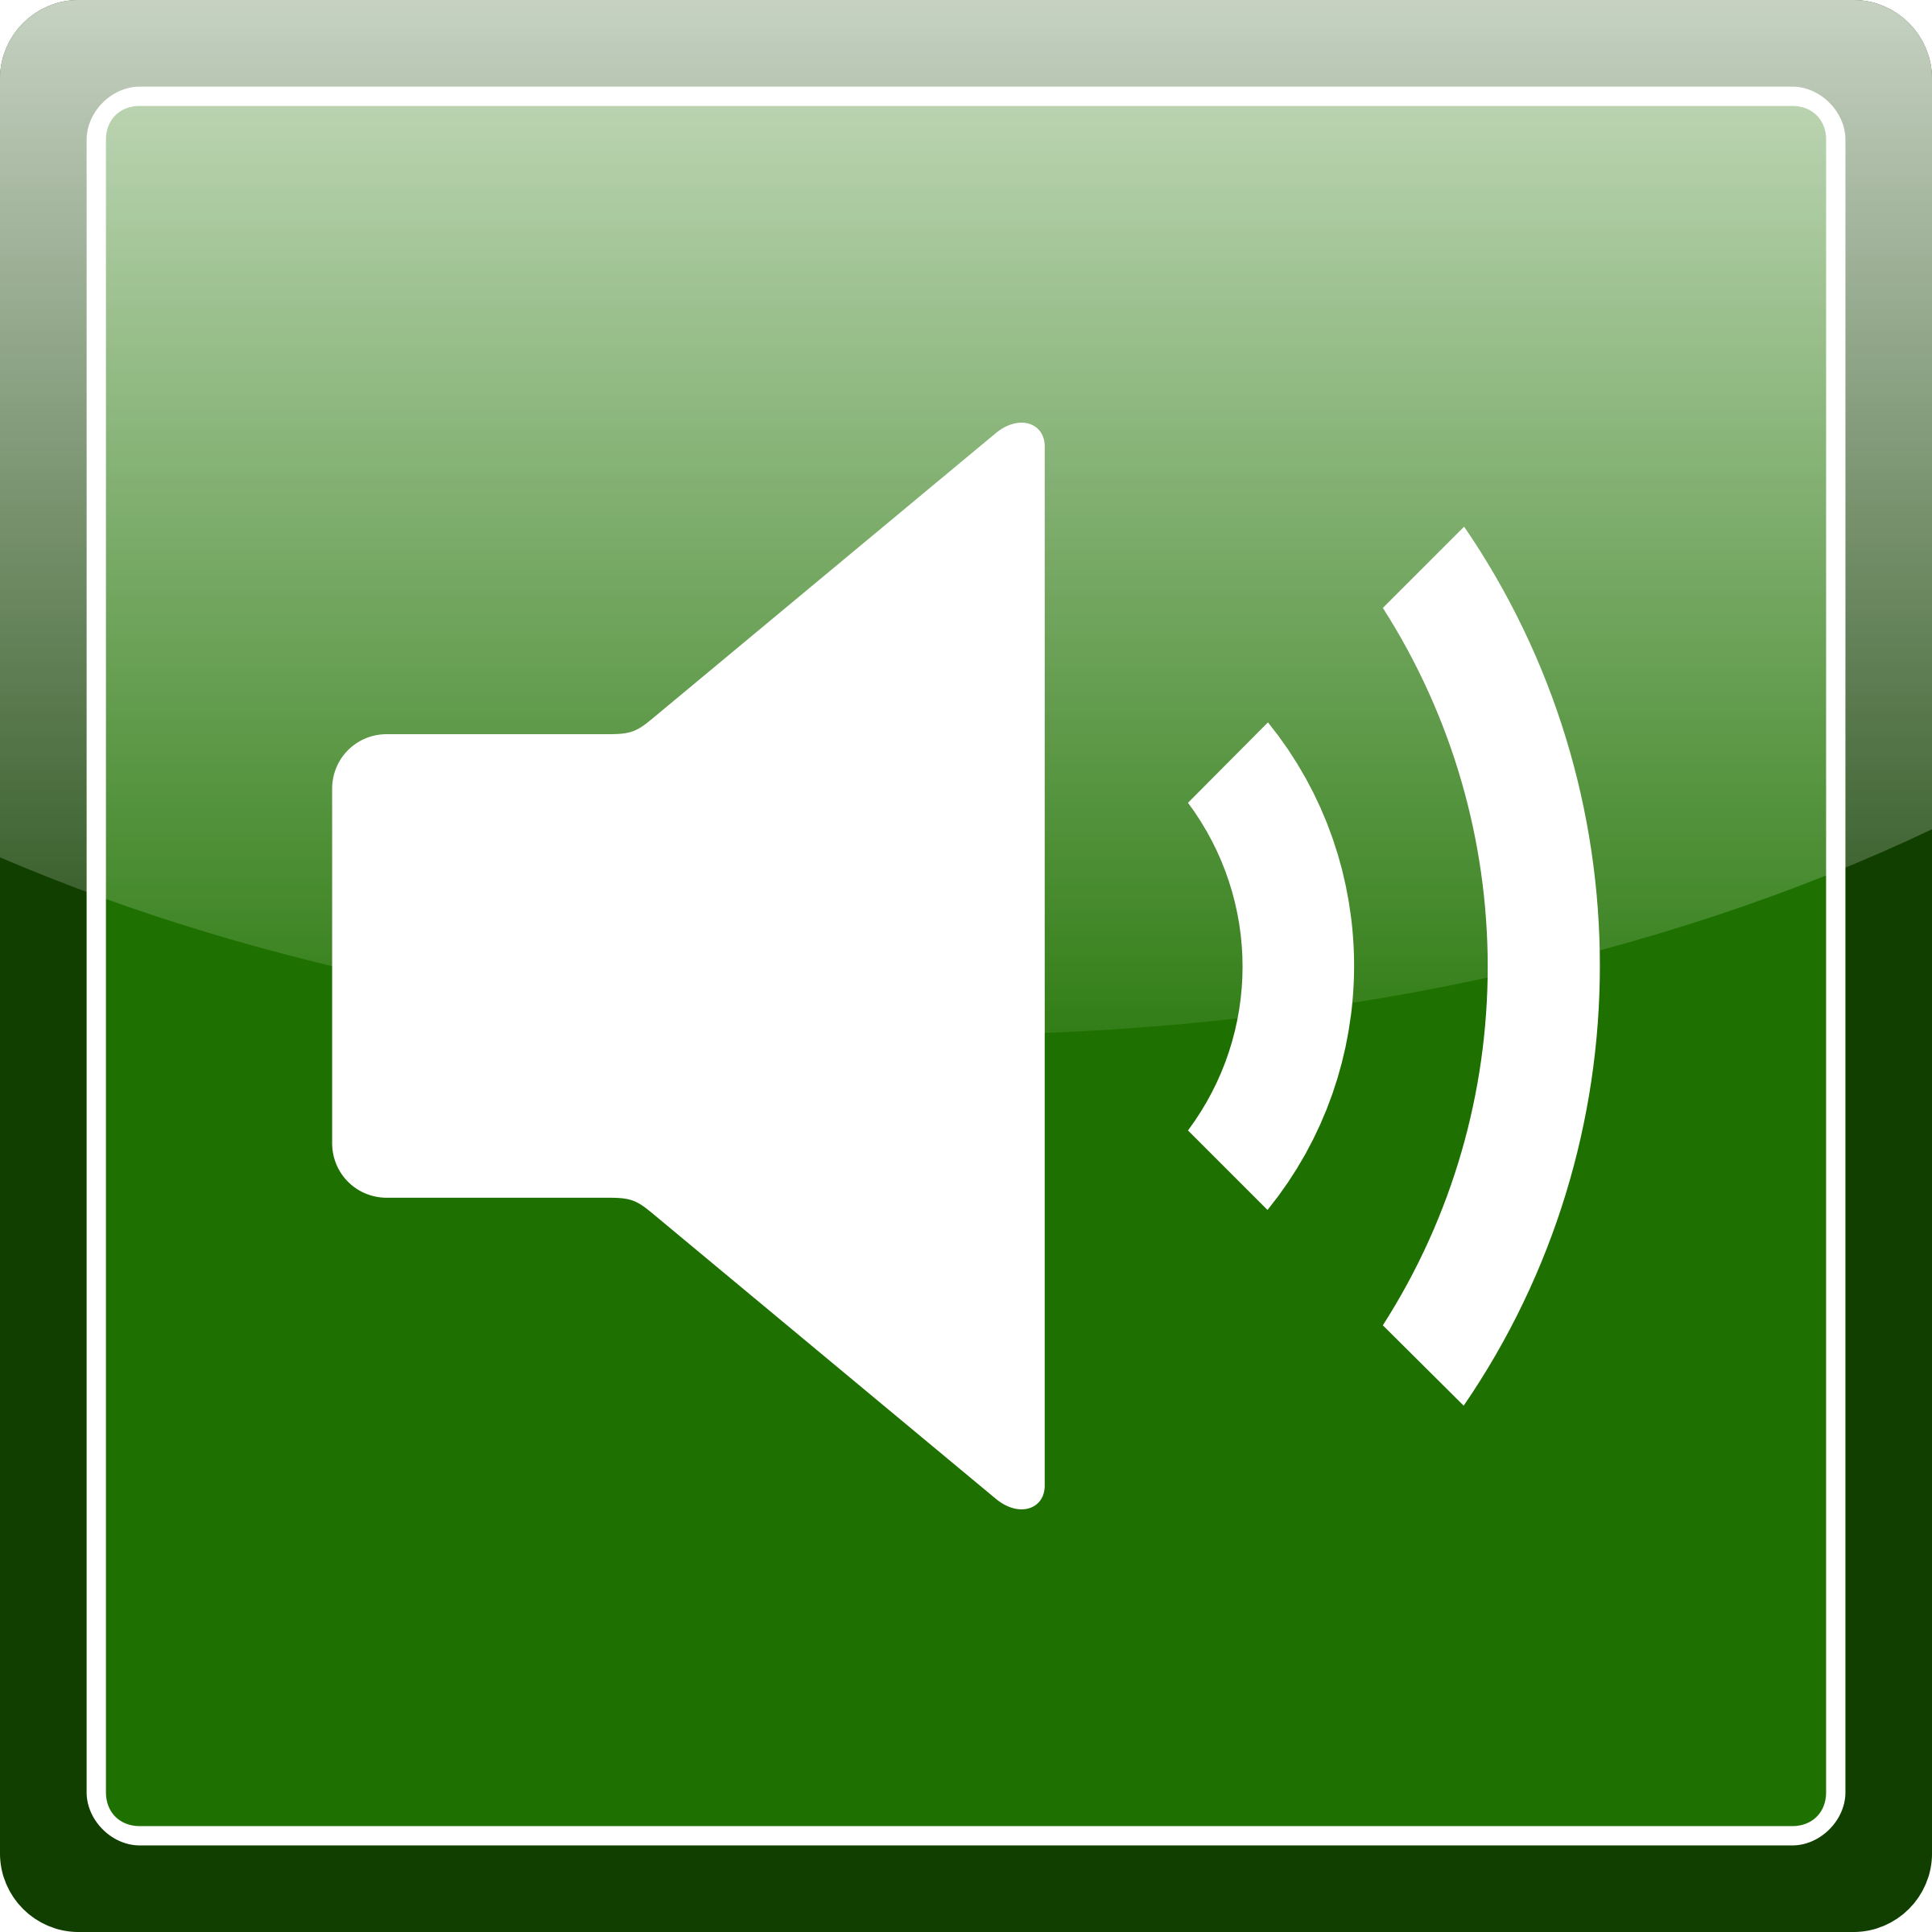 Green audio icon by kuba